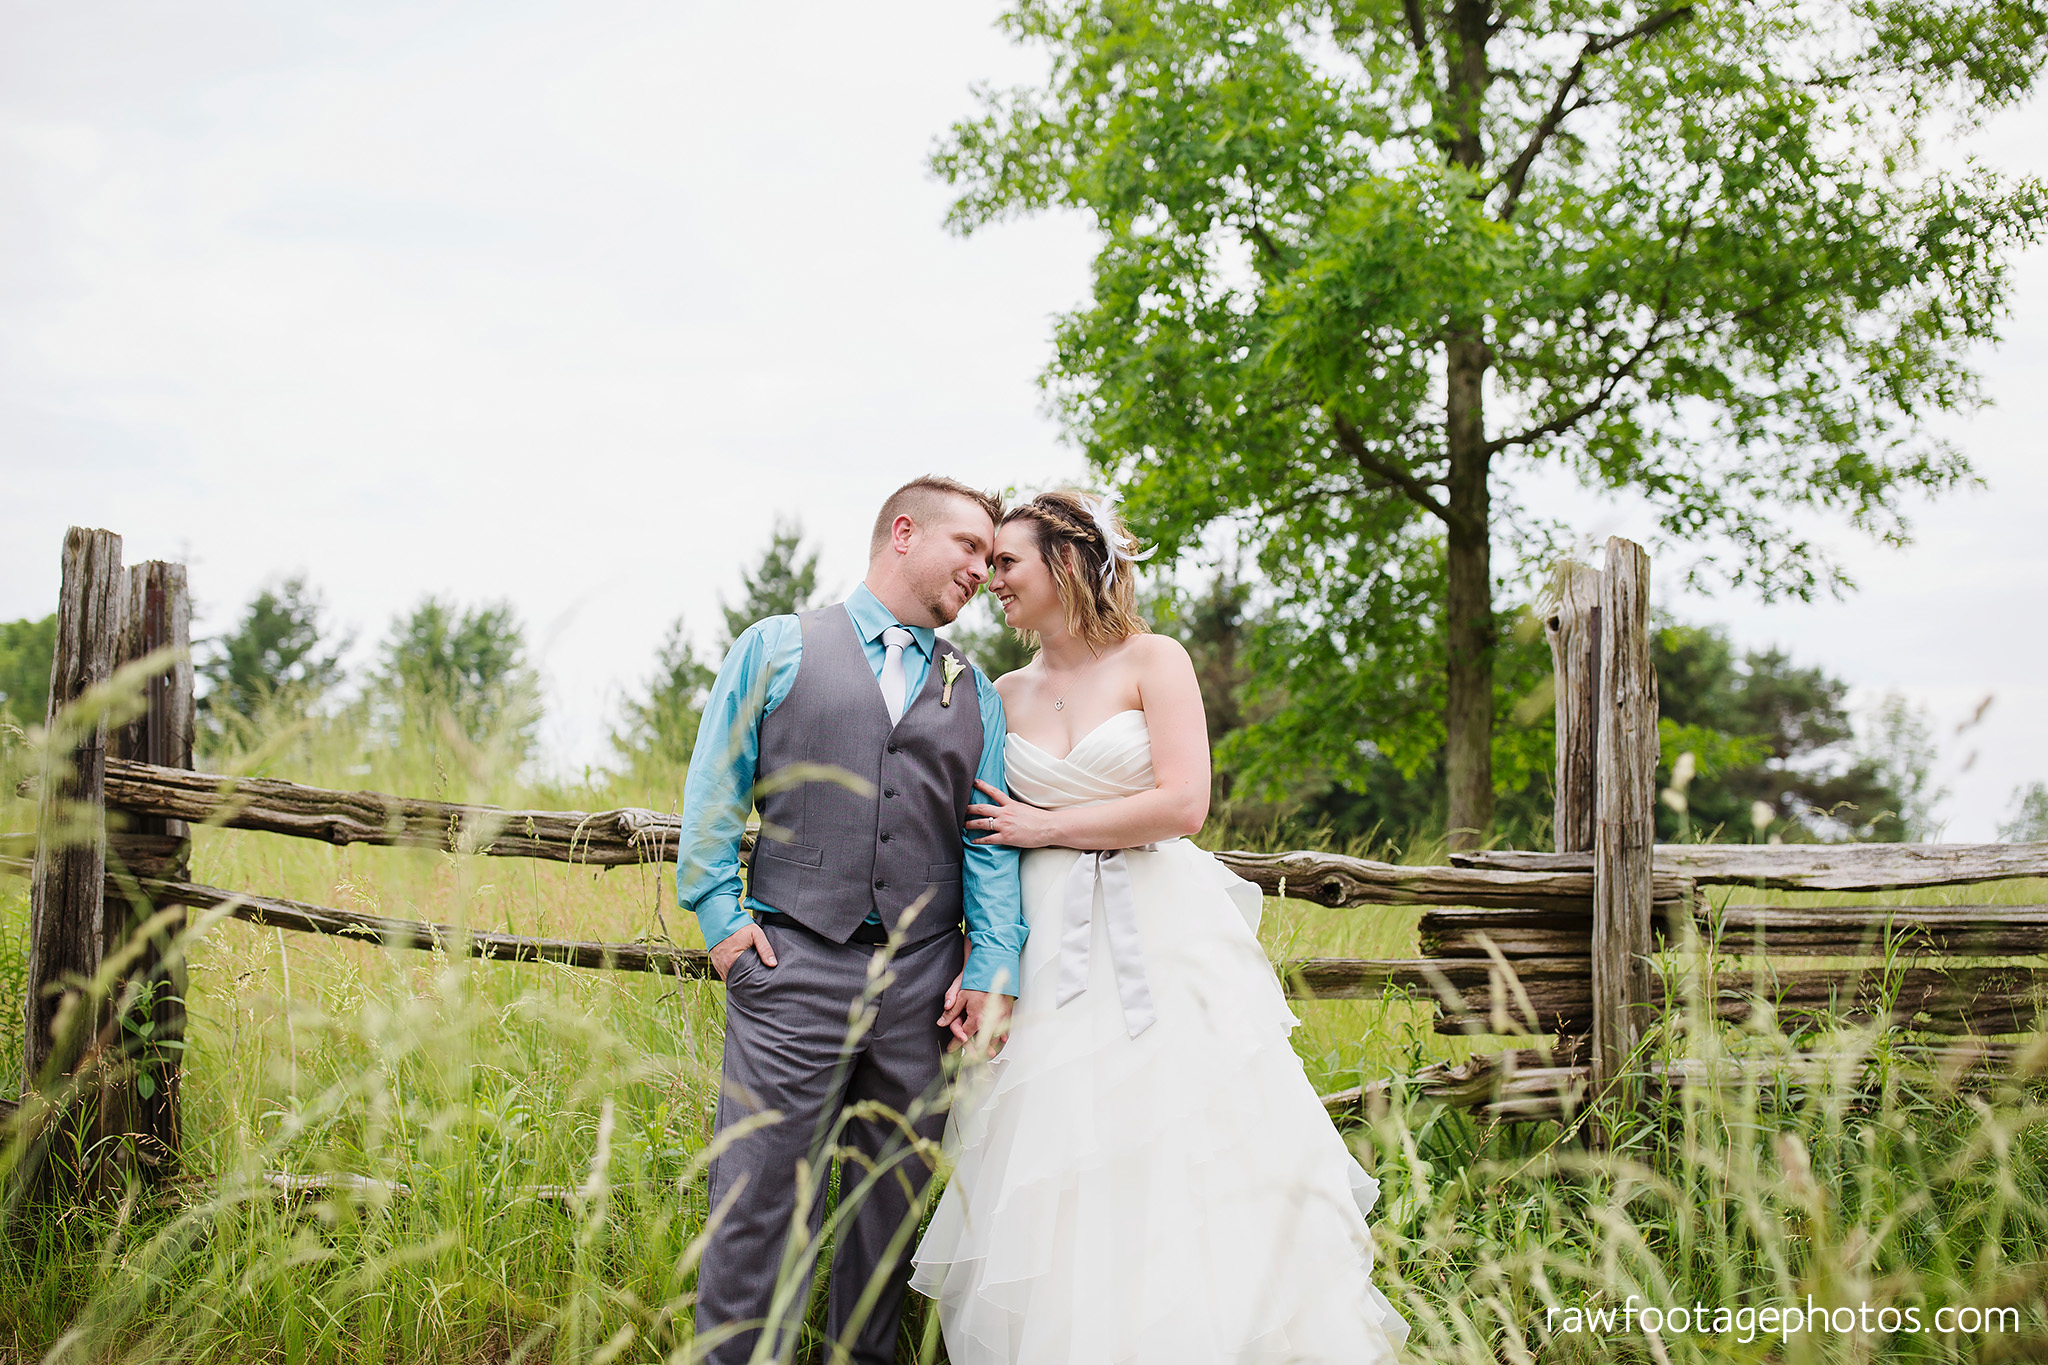 london_ontario_wedding_photographer-west_haven_golf_and_country_club-raw_footage_photography036.jpg